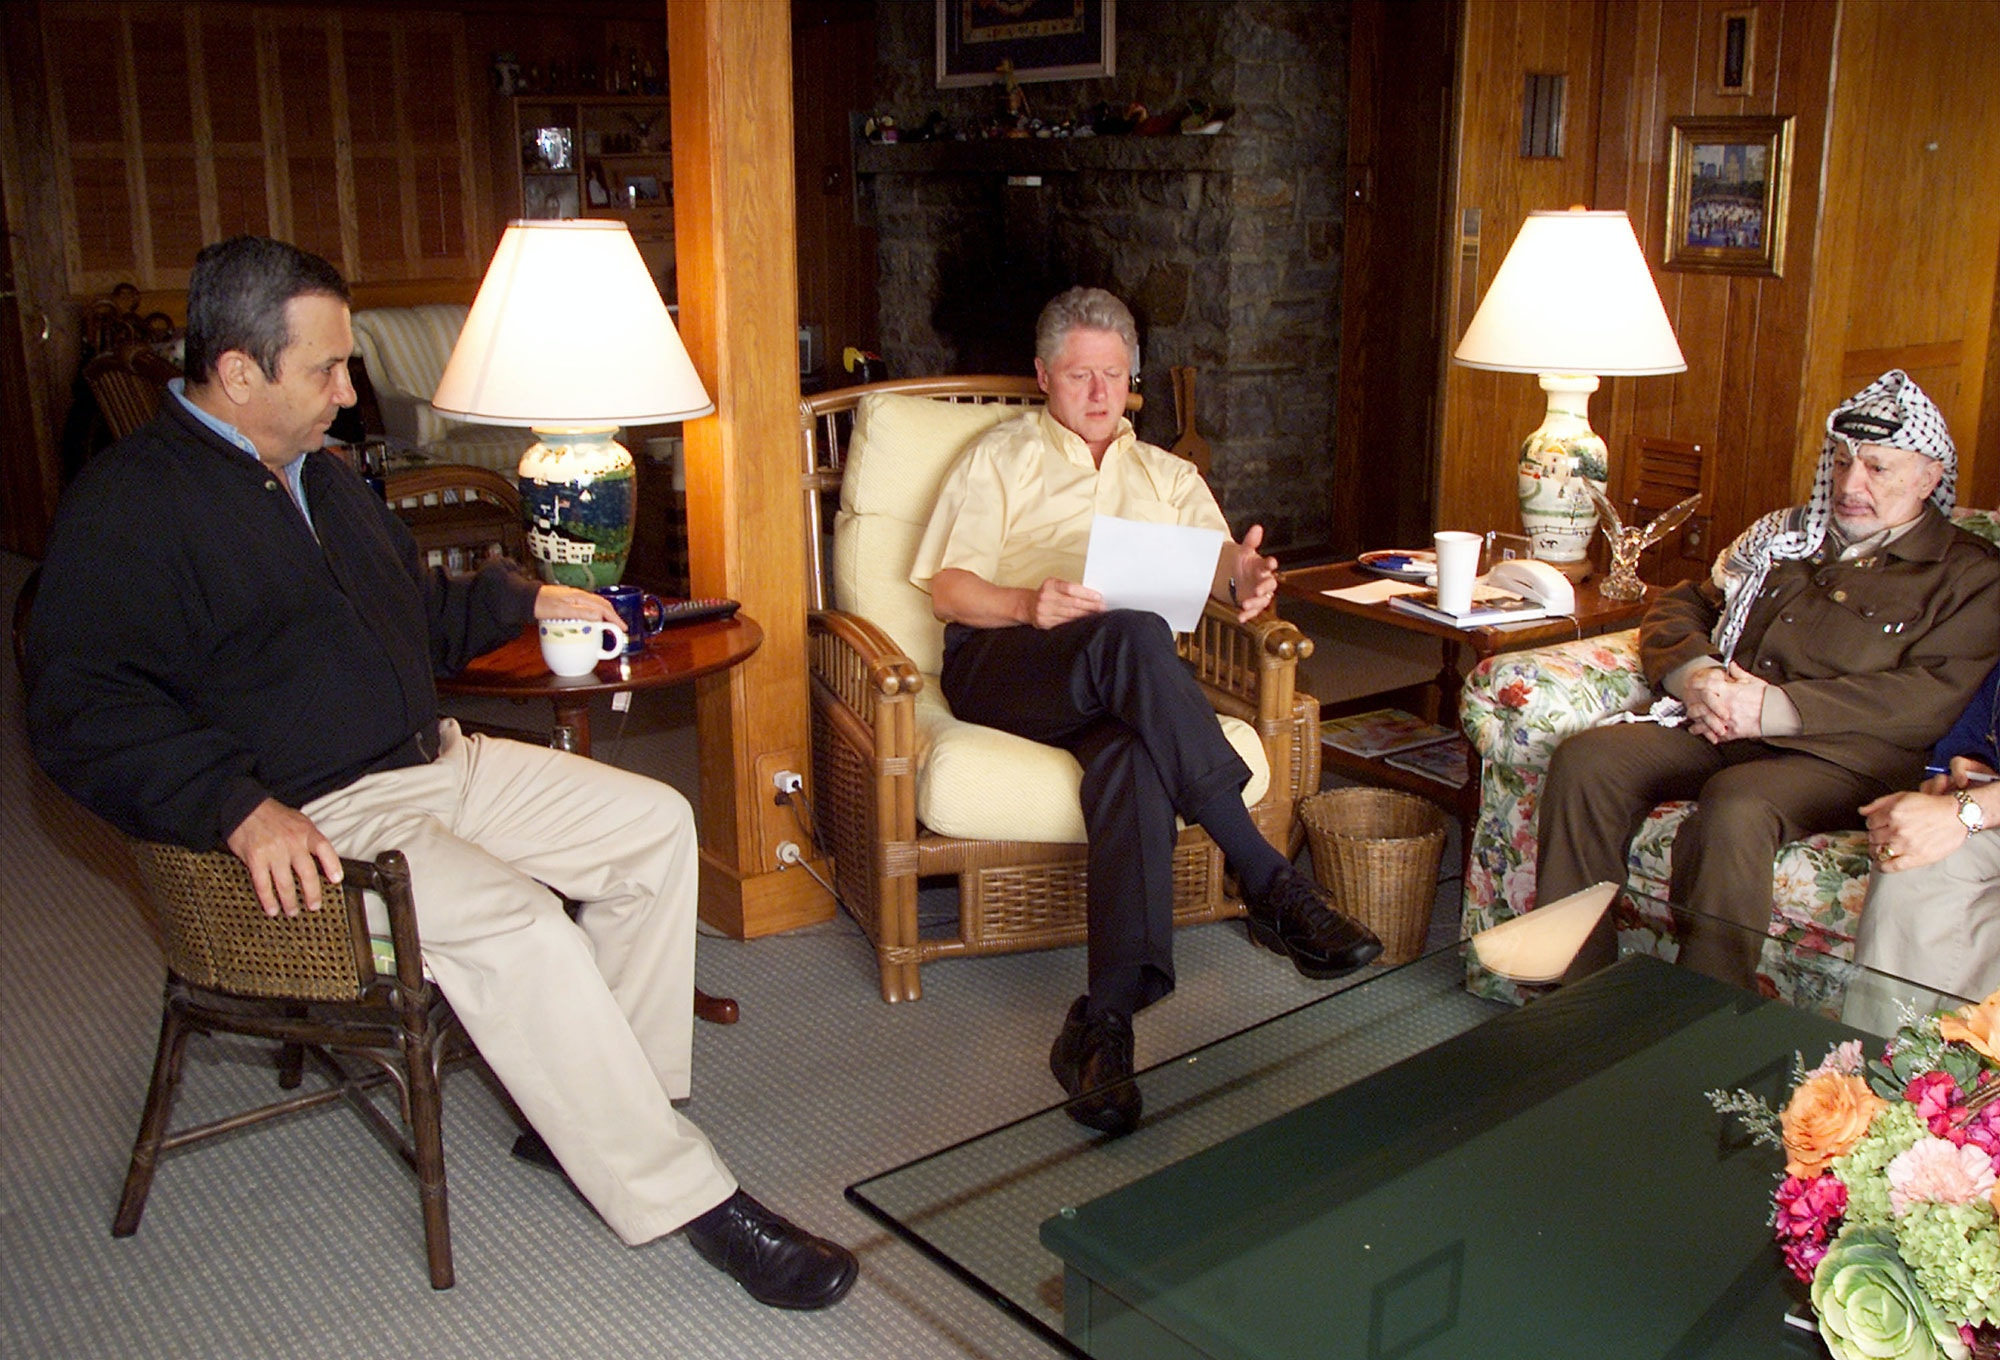 374228 01: U.S. President Bill Clinton, center, speaks during a morning meeting with Israeli Prime Minister Ehud Barak, left, and Palestinian Chairman Yasser Arafat July 25, 2000 at Camp David in Maryland. Clinton announced later in the day that the Middle East peace summit had collapsed because of a deadlock over the status of the disputed city of Jerusalem. (Photo by Ralph Alswang/Newsmakers)